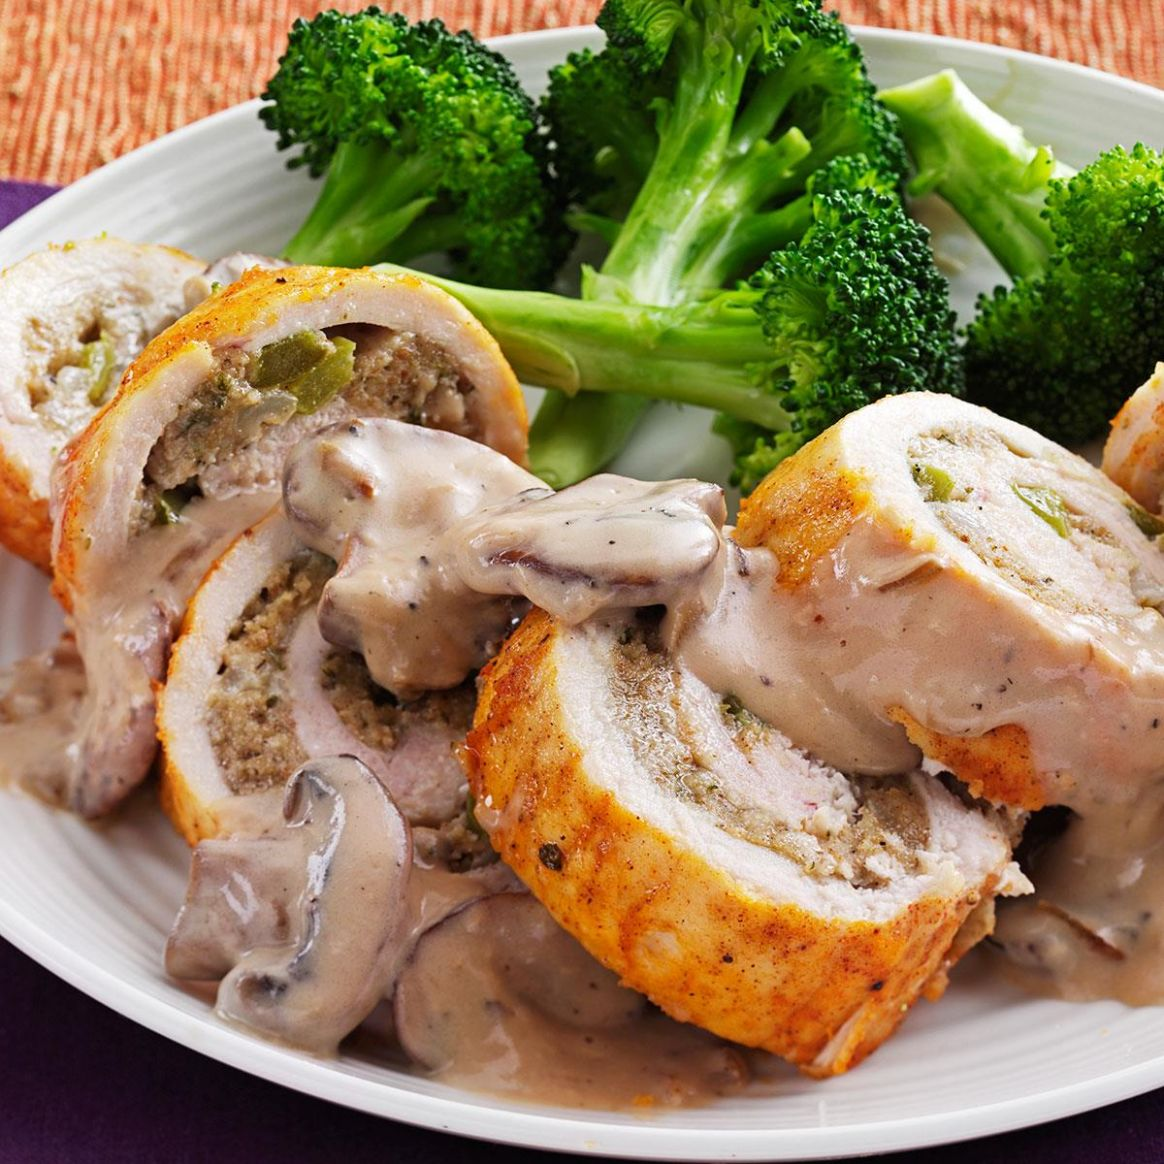 Makeover Stuffed Chicken Breasts with Mushroom Sauce - Recipe Chicken Breast With Mushroom Sauce